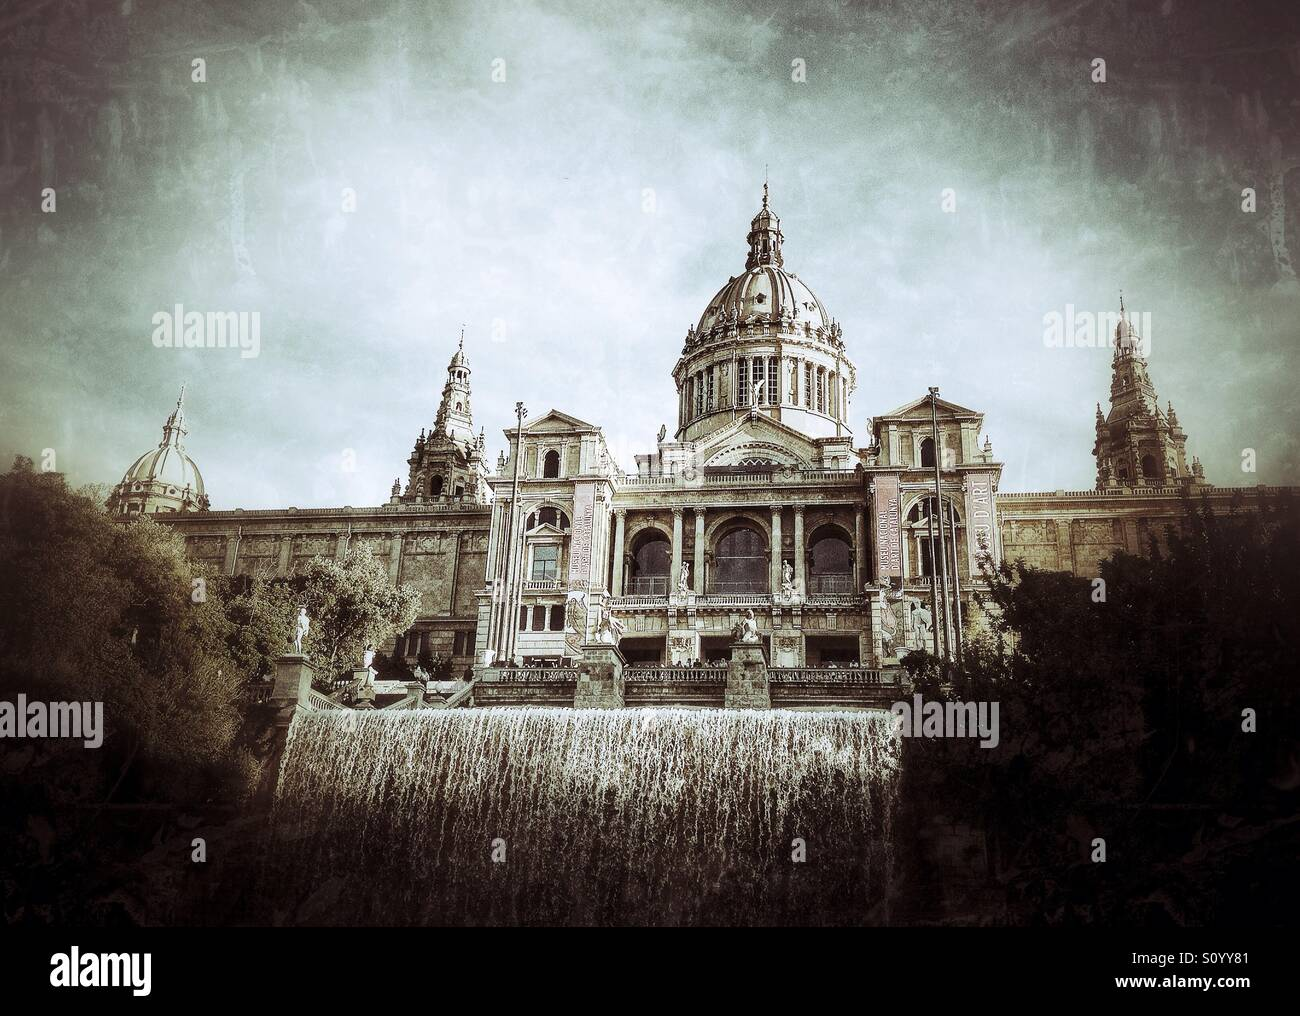 MNAC (National Art Museum of Catalonia) in Barcelona, Spain - Stock Image